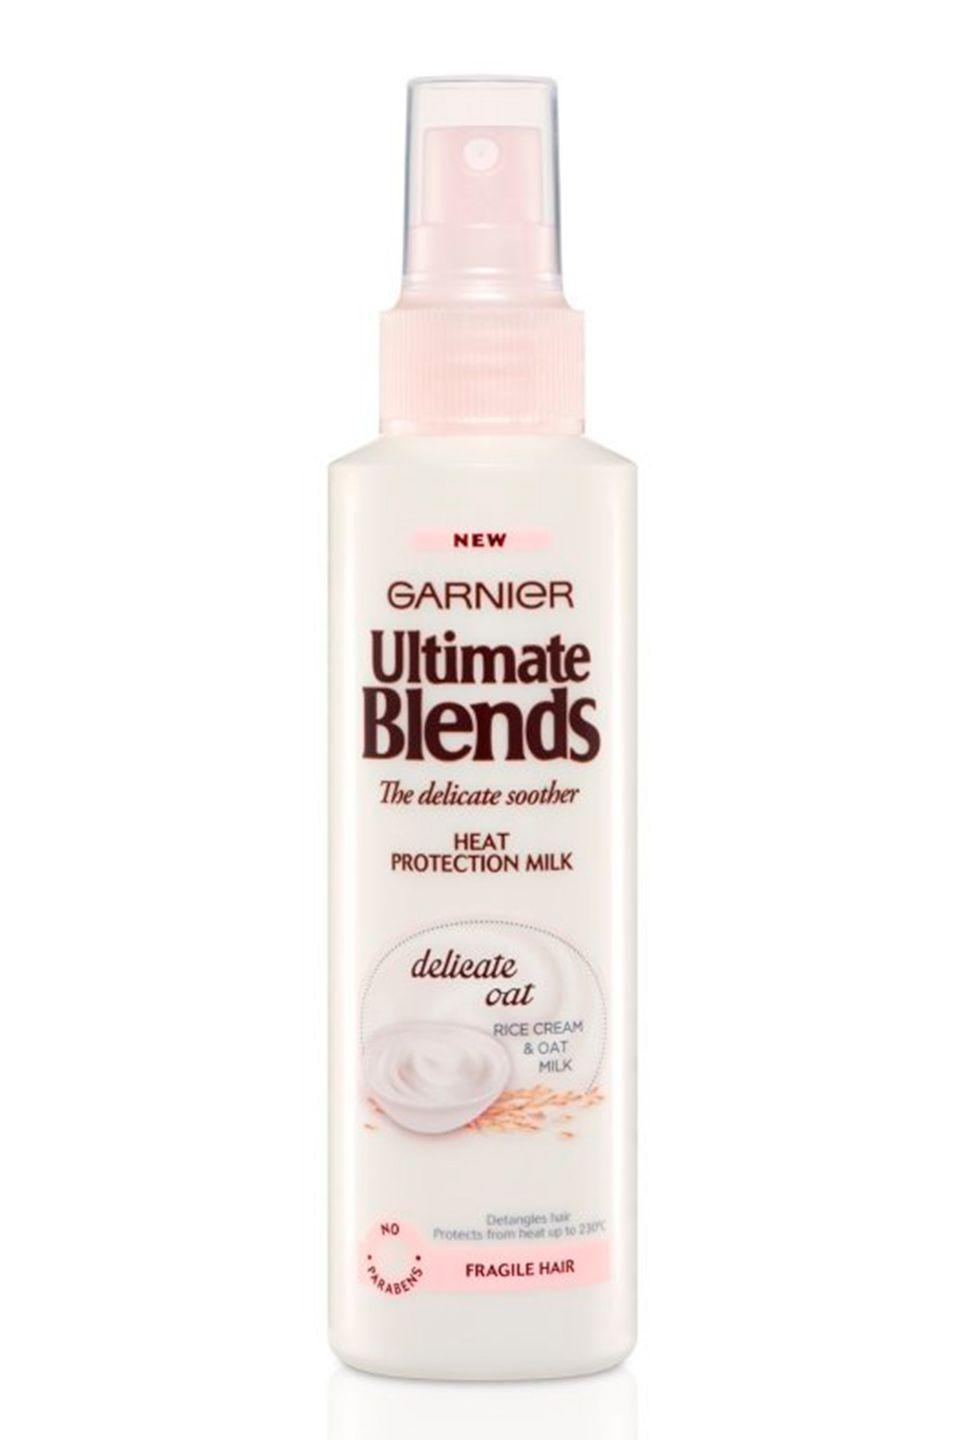 "<p><strong>B</strong><strong>est for: Weak hair that breaks easily</strong></p><p>Garnier's Ultimate Blends Heat Protection Milk has a non-greasy, milky formula that gives hair a softness without weighing it down. The nourishing oat extract provides a silkiness to parched strands and makes quick work of brushing and blow-drying. </p><p>Not only is it ace for snap-prone tresses, but it's also purse-friendly. Win, win.</p><p><strong>Price:</strong> £4.98</p><p><a class=""link rapid-noclick-resp"" href=""http://www.feelunique.com/p/Garnier-Ultimate-Blends-Delicate-Smoother-Heat-Protect-Milk-150ml"" rel=""nofollow noopener"" target=""_blank"" data-ylk=""slk:buy now"">buy now</a><br></p>"